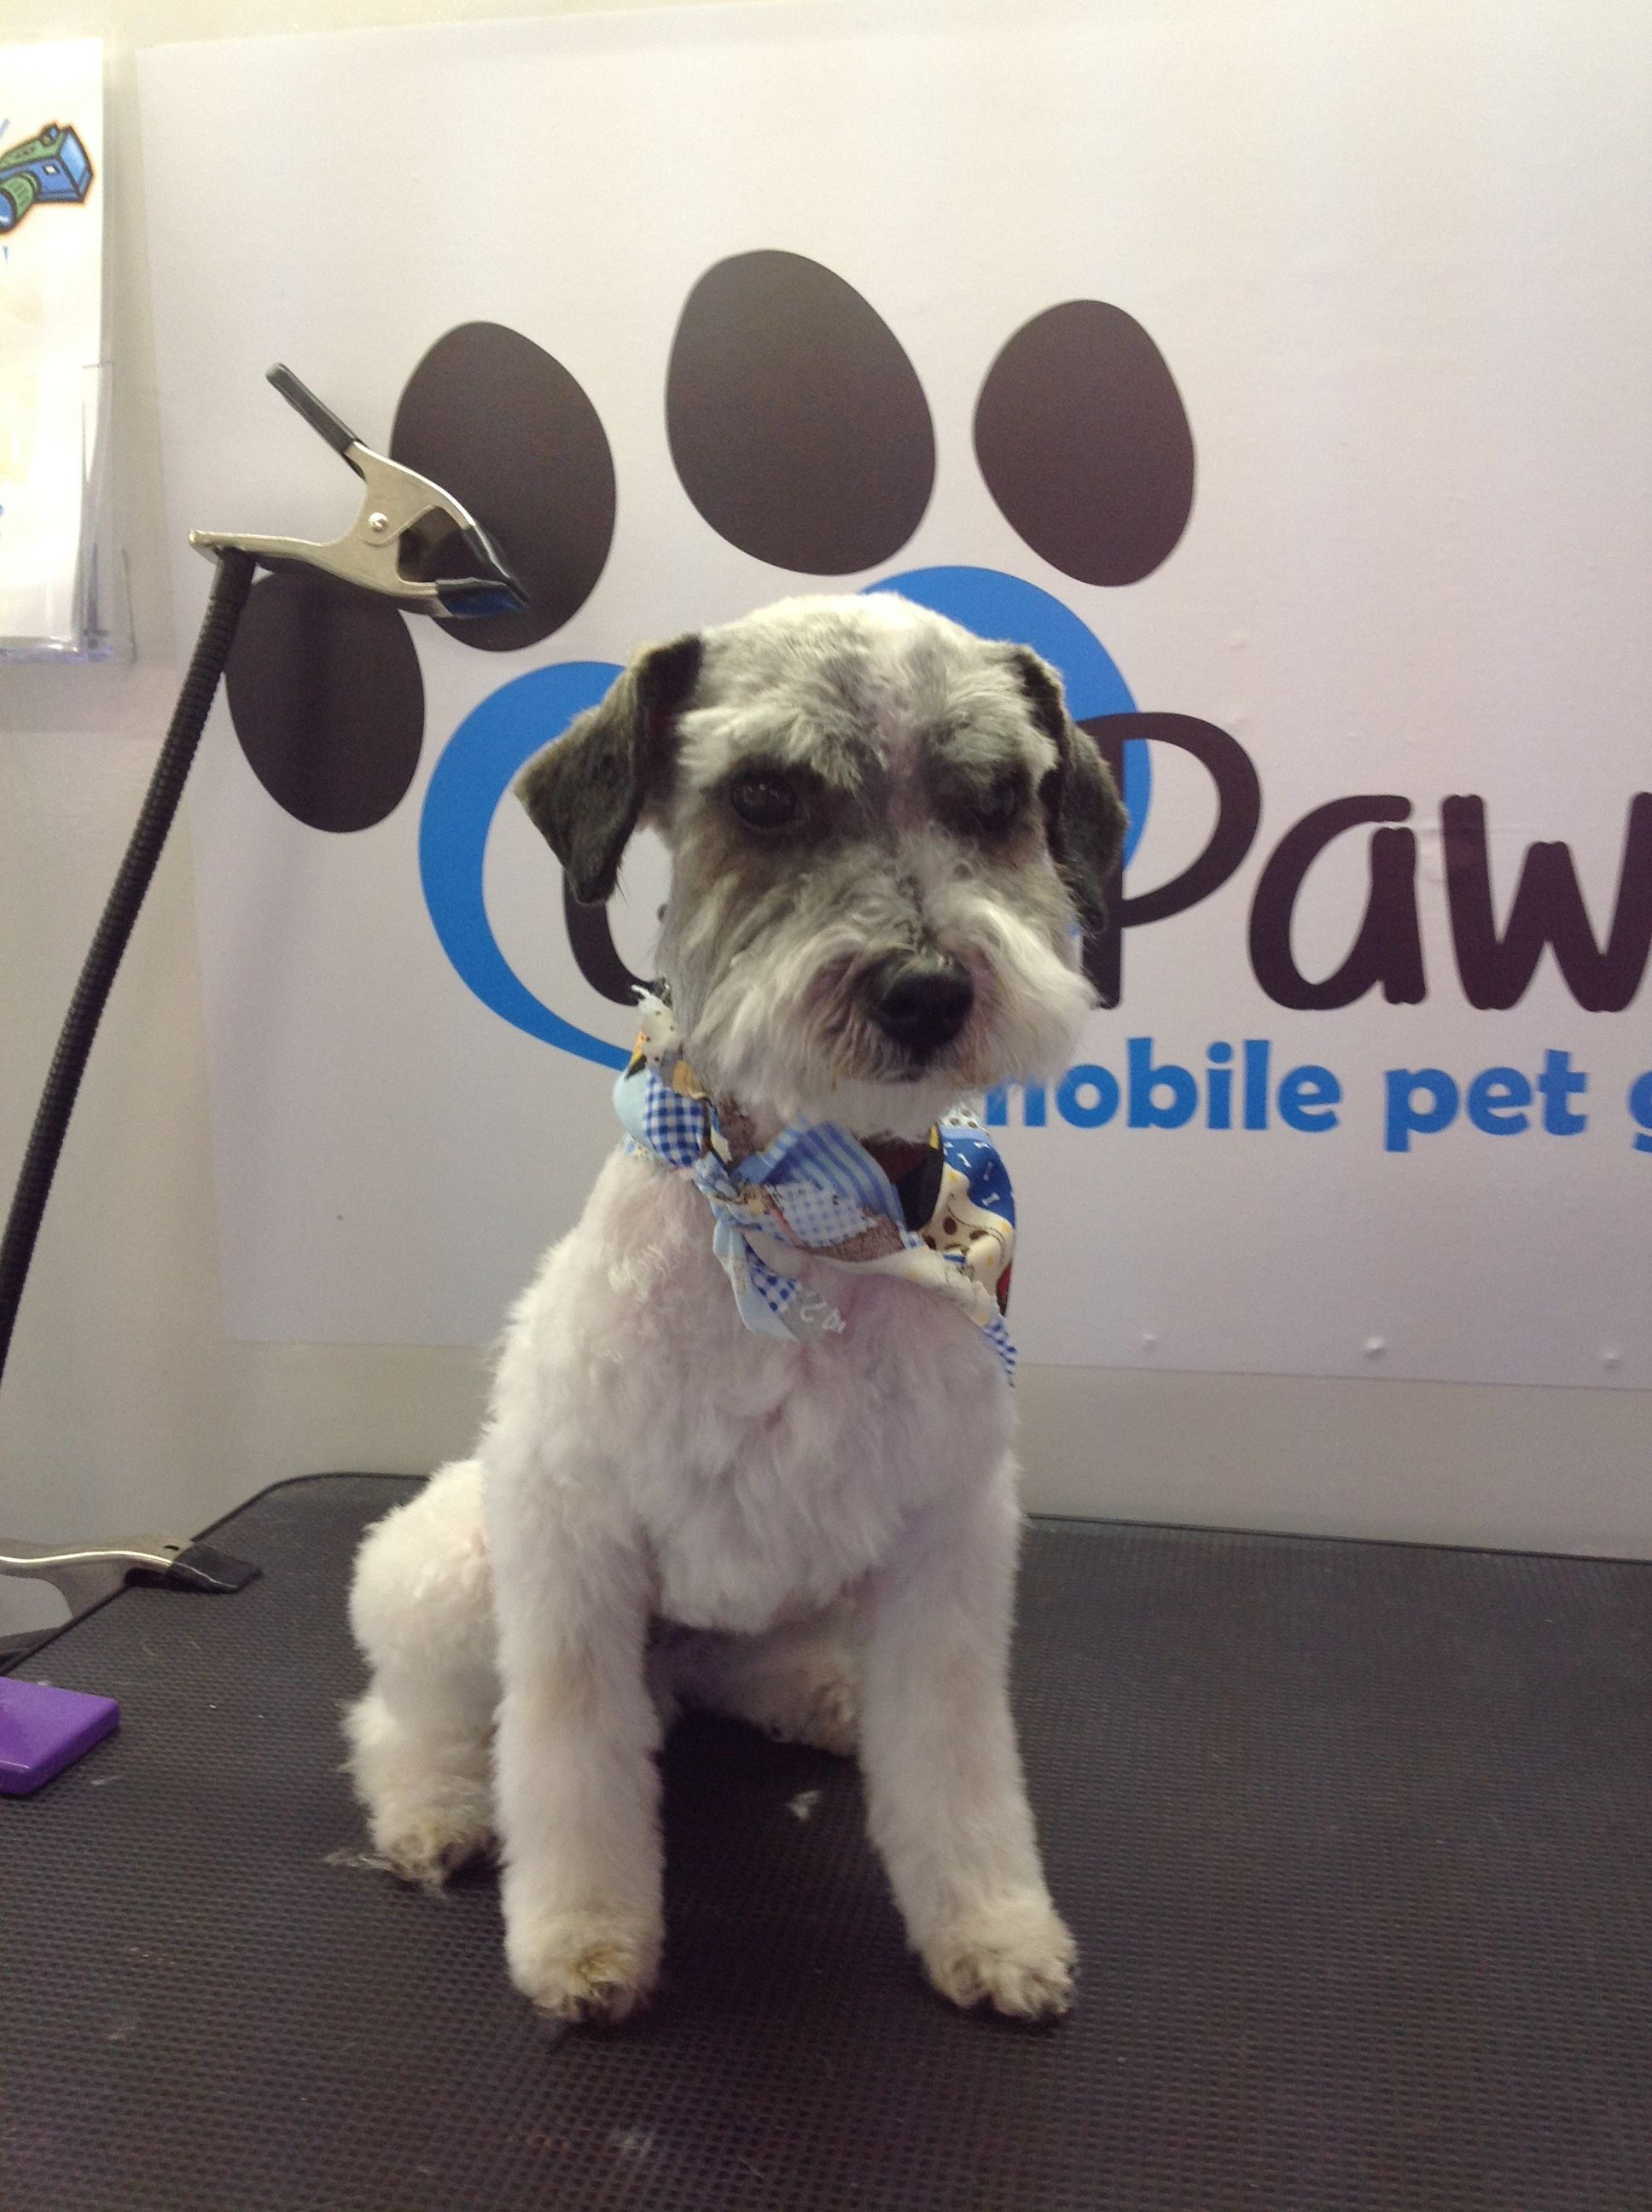 schnoodle Mobile pet grooming, Schnoodle, Pet grooming